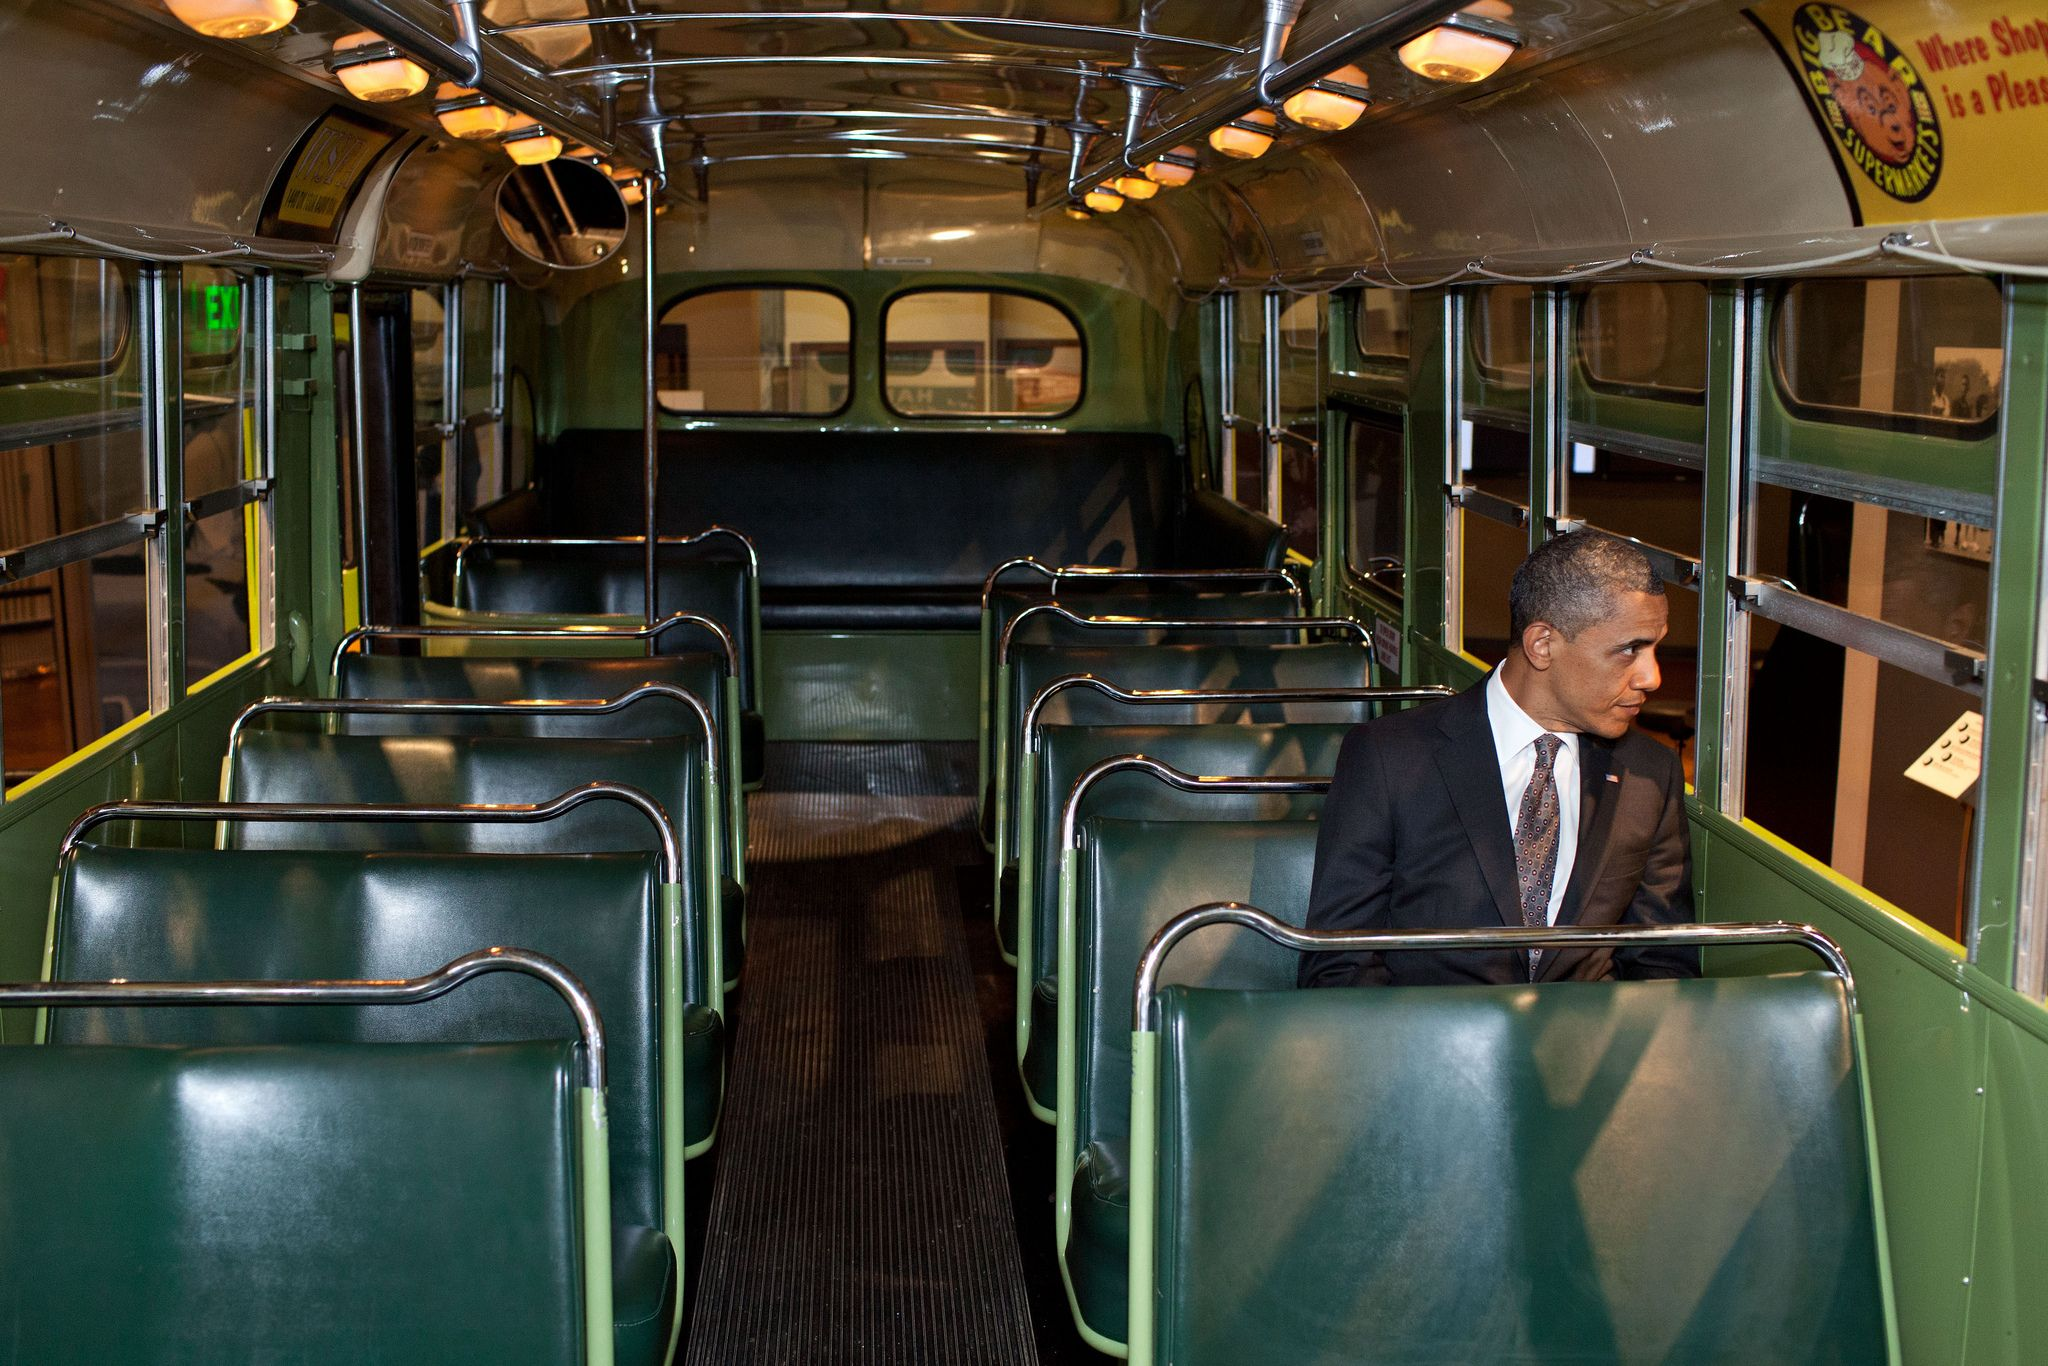 President Barack Obama sits on the famed Rosa Parks bus at the Henry Ford Museum following an event in Dearborn, Mich., April 18, 2012. (Official White House Photo by Pete Souza)  This official White House photograph is being made available only for publication by news organizations and/or for personal use printing by the subject(s) of the photograph. The photograph may not be manipulated in any way and may not be used in commercial or political ma...